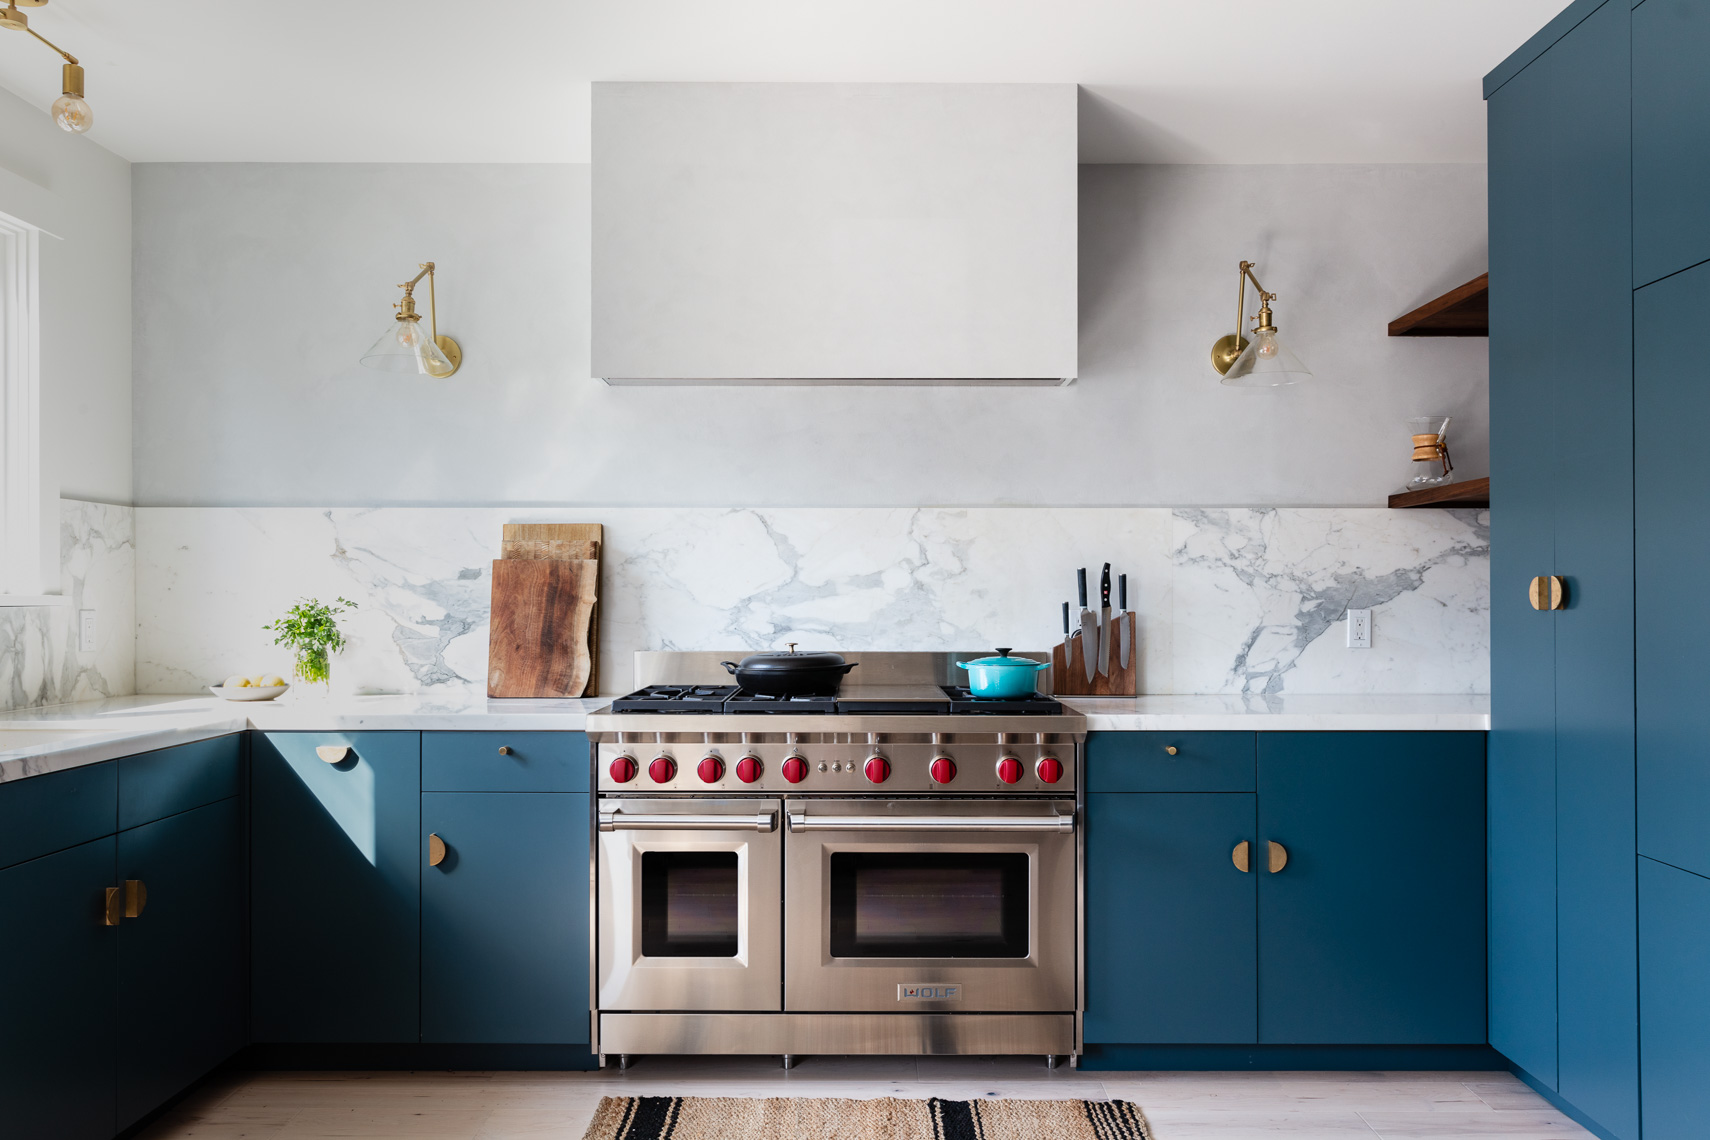 EK_1939SunsetHouse_Kitchen_0415-Edit